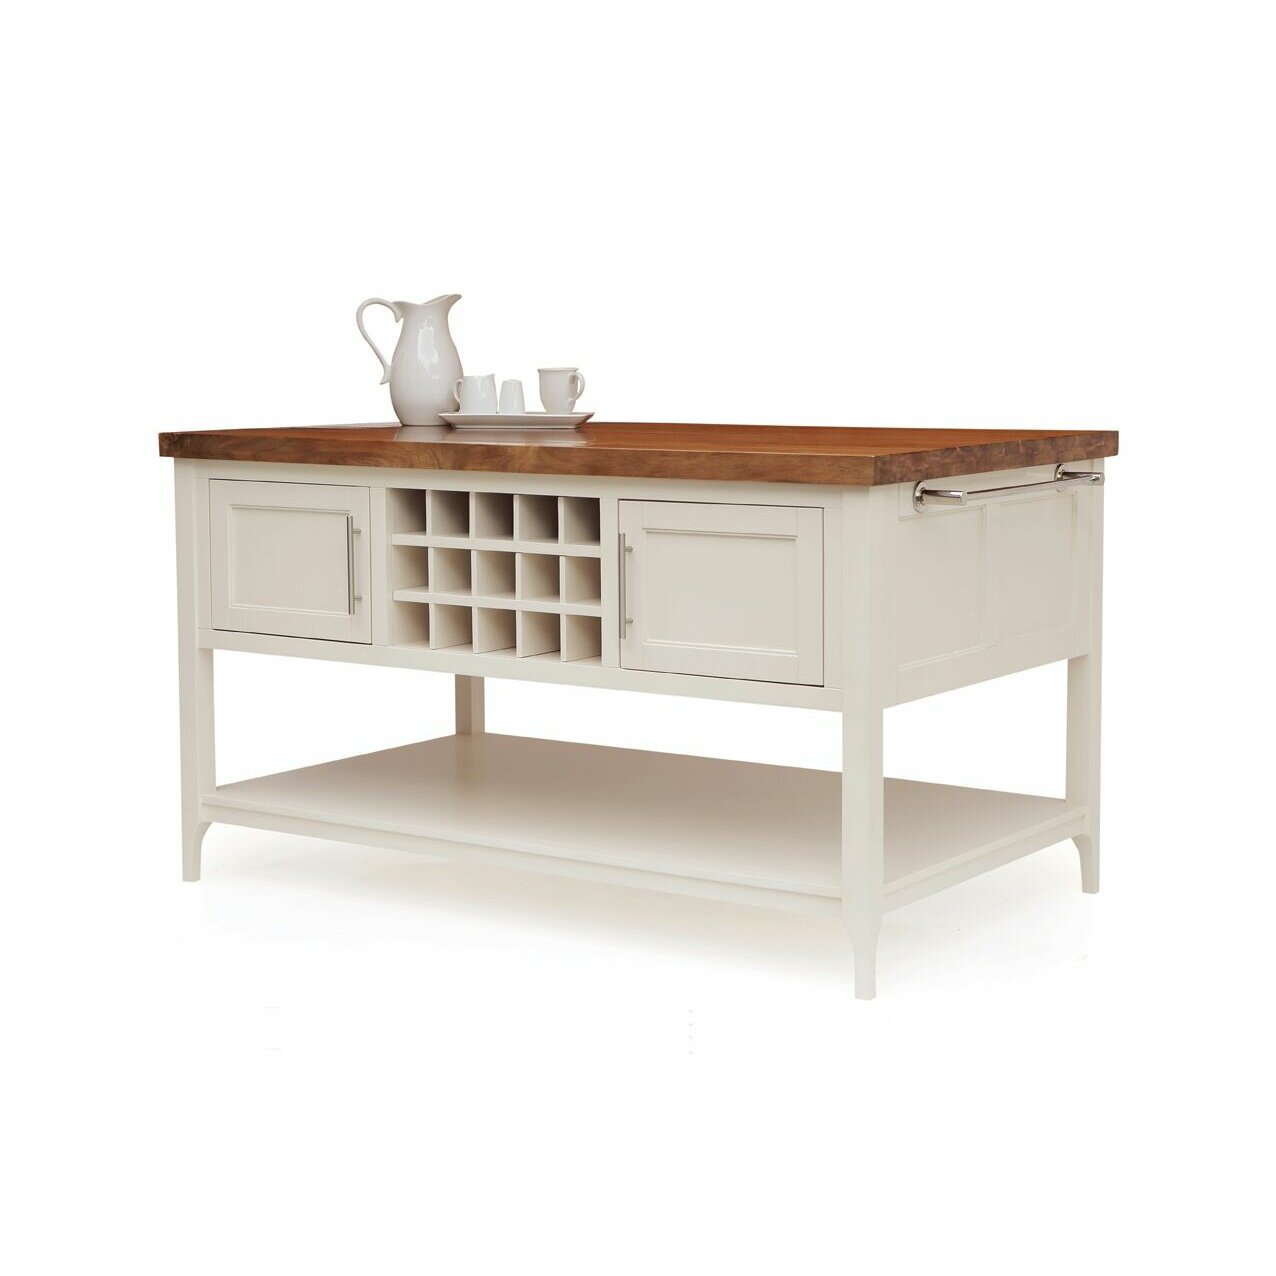 222 fifth furniture gramercy kitchen island wayfair 222 fifth furniture gramercy kitchen island wayfair